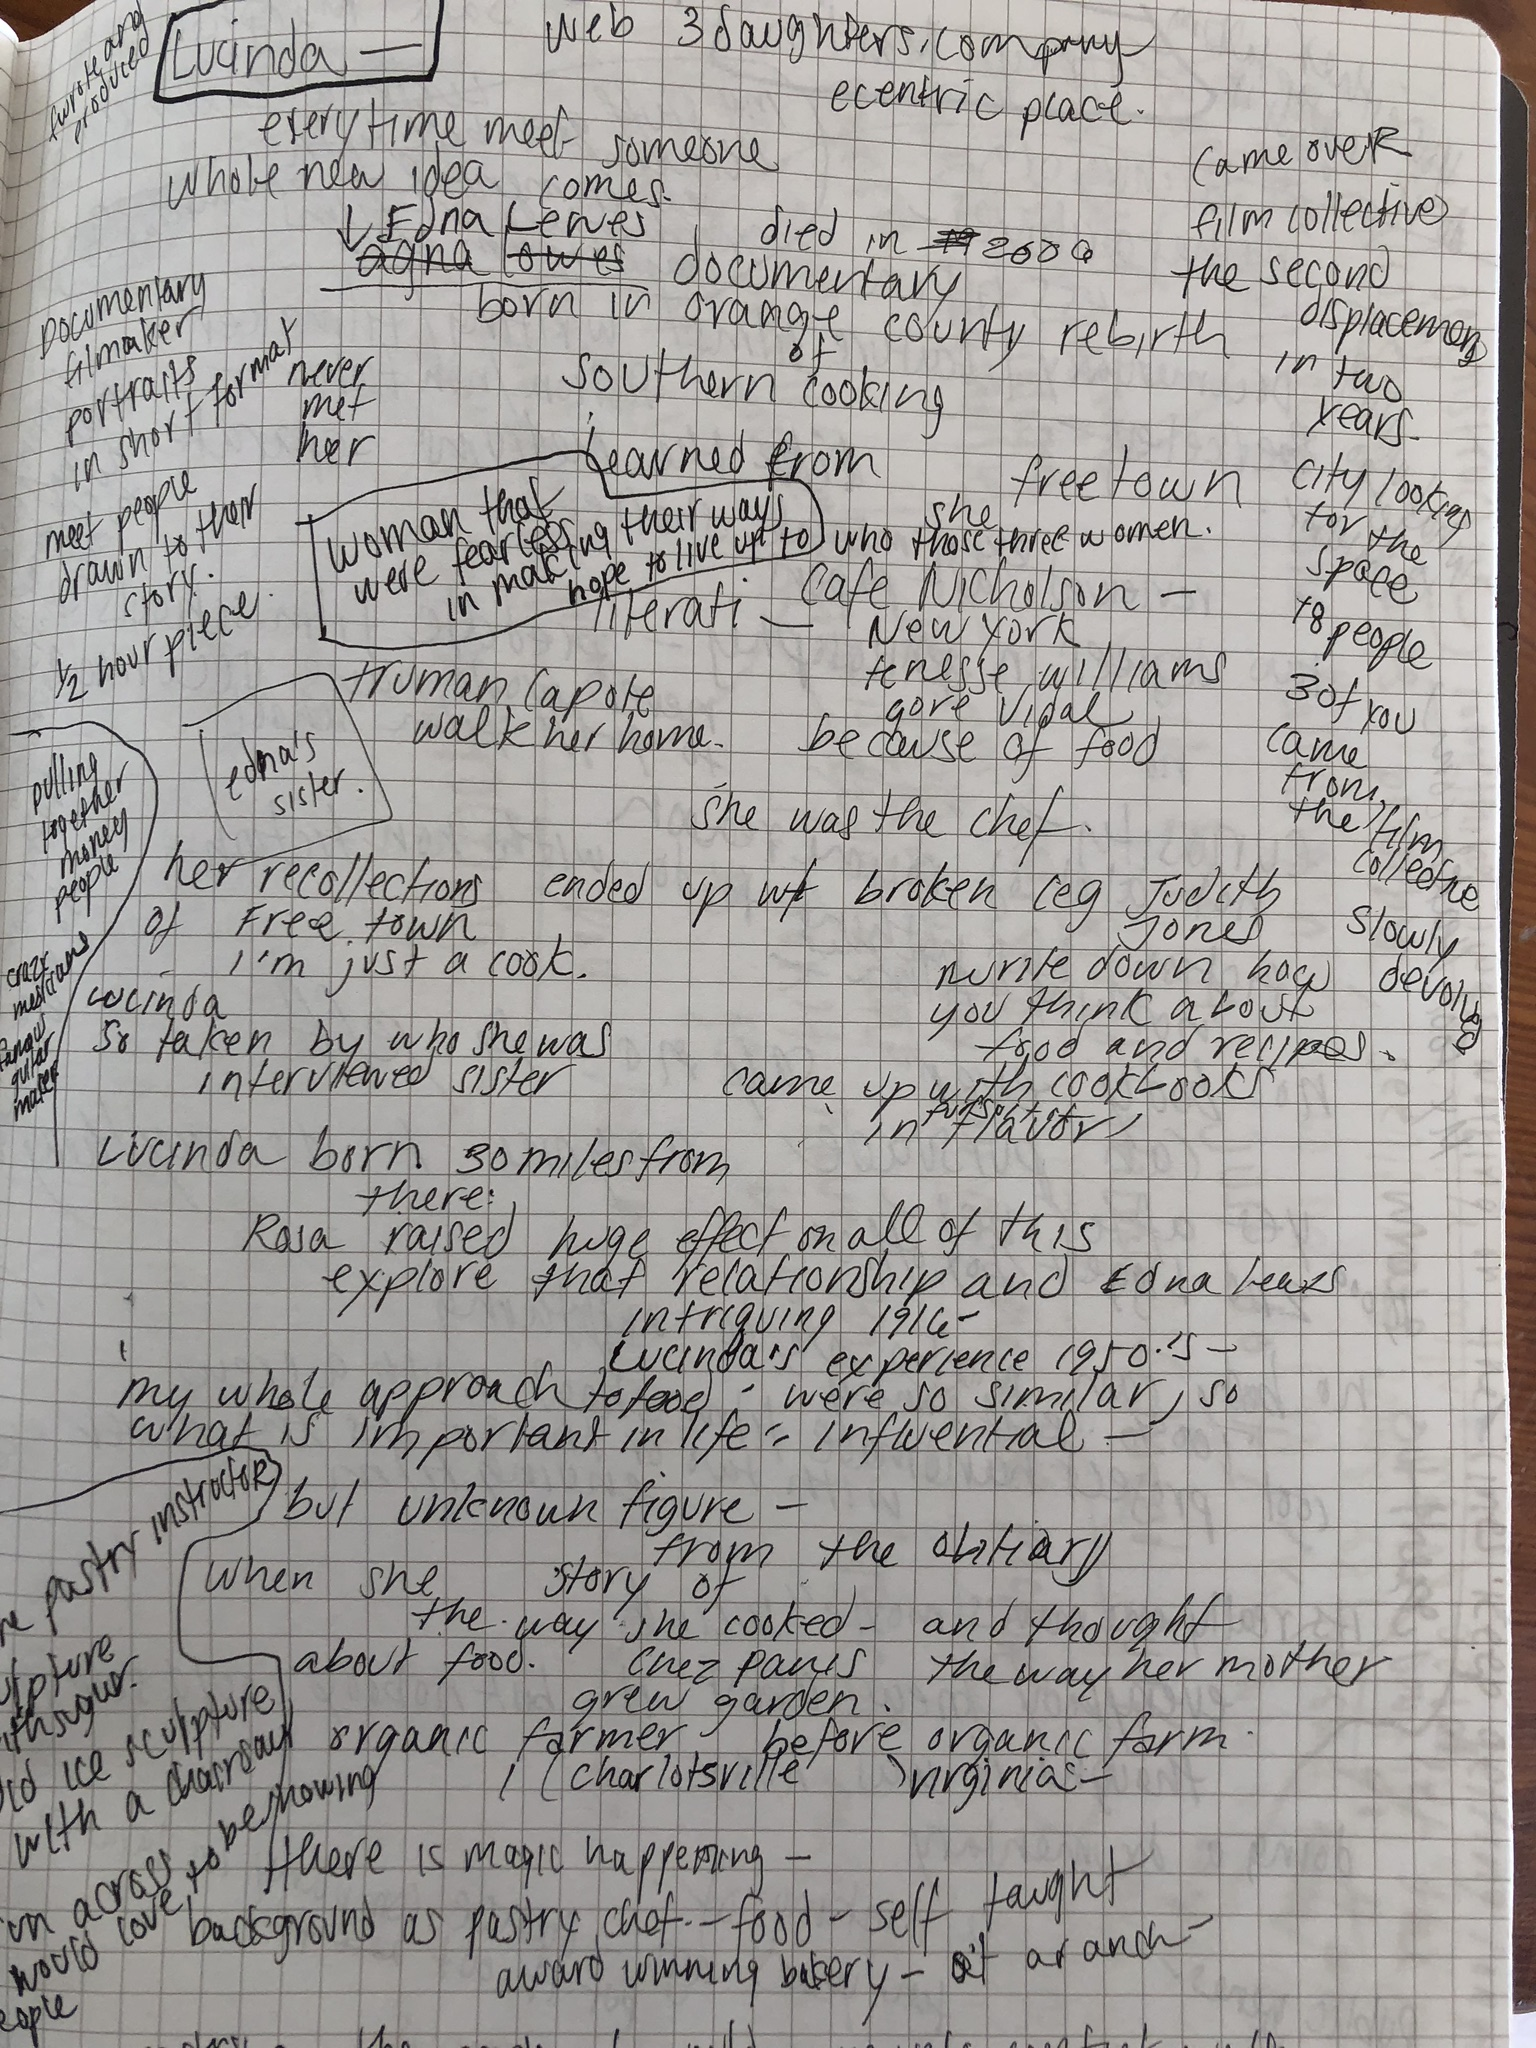 Interview notes with Lucinda Buxton Martin